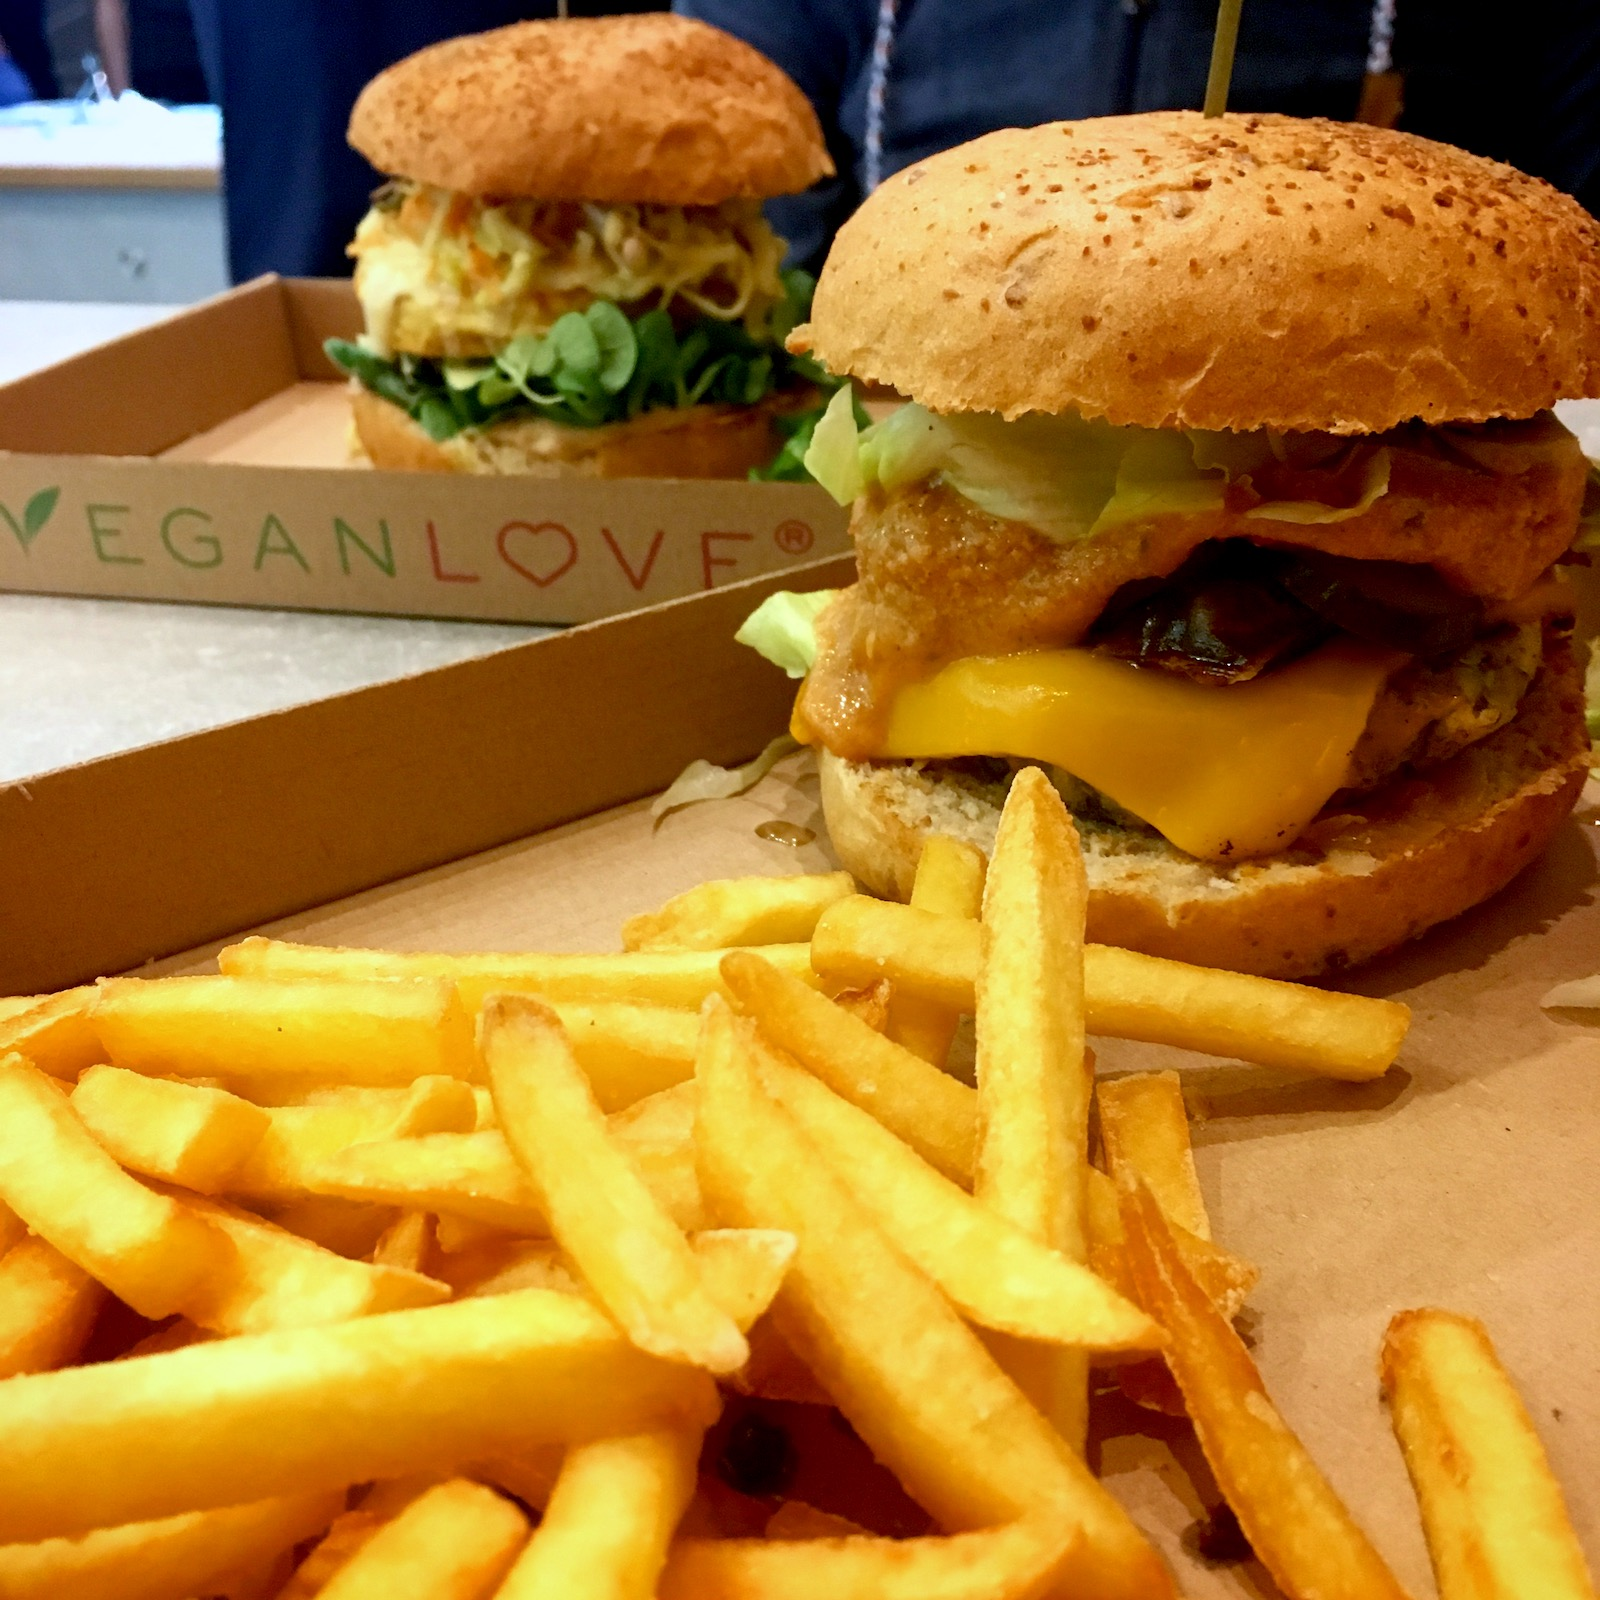 Vegan Love Budapest - one of the best vegan burgers in Budapest